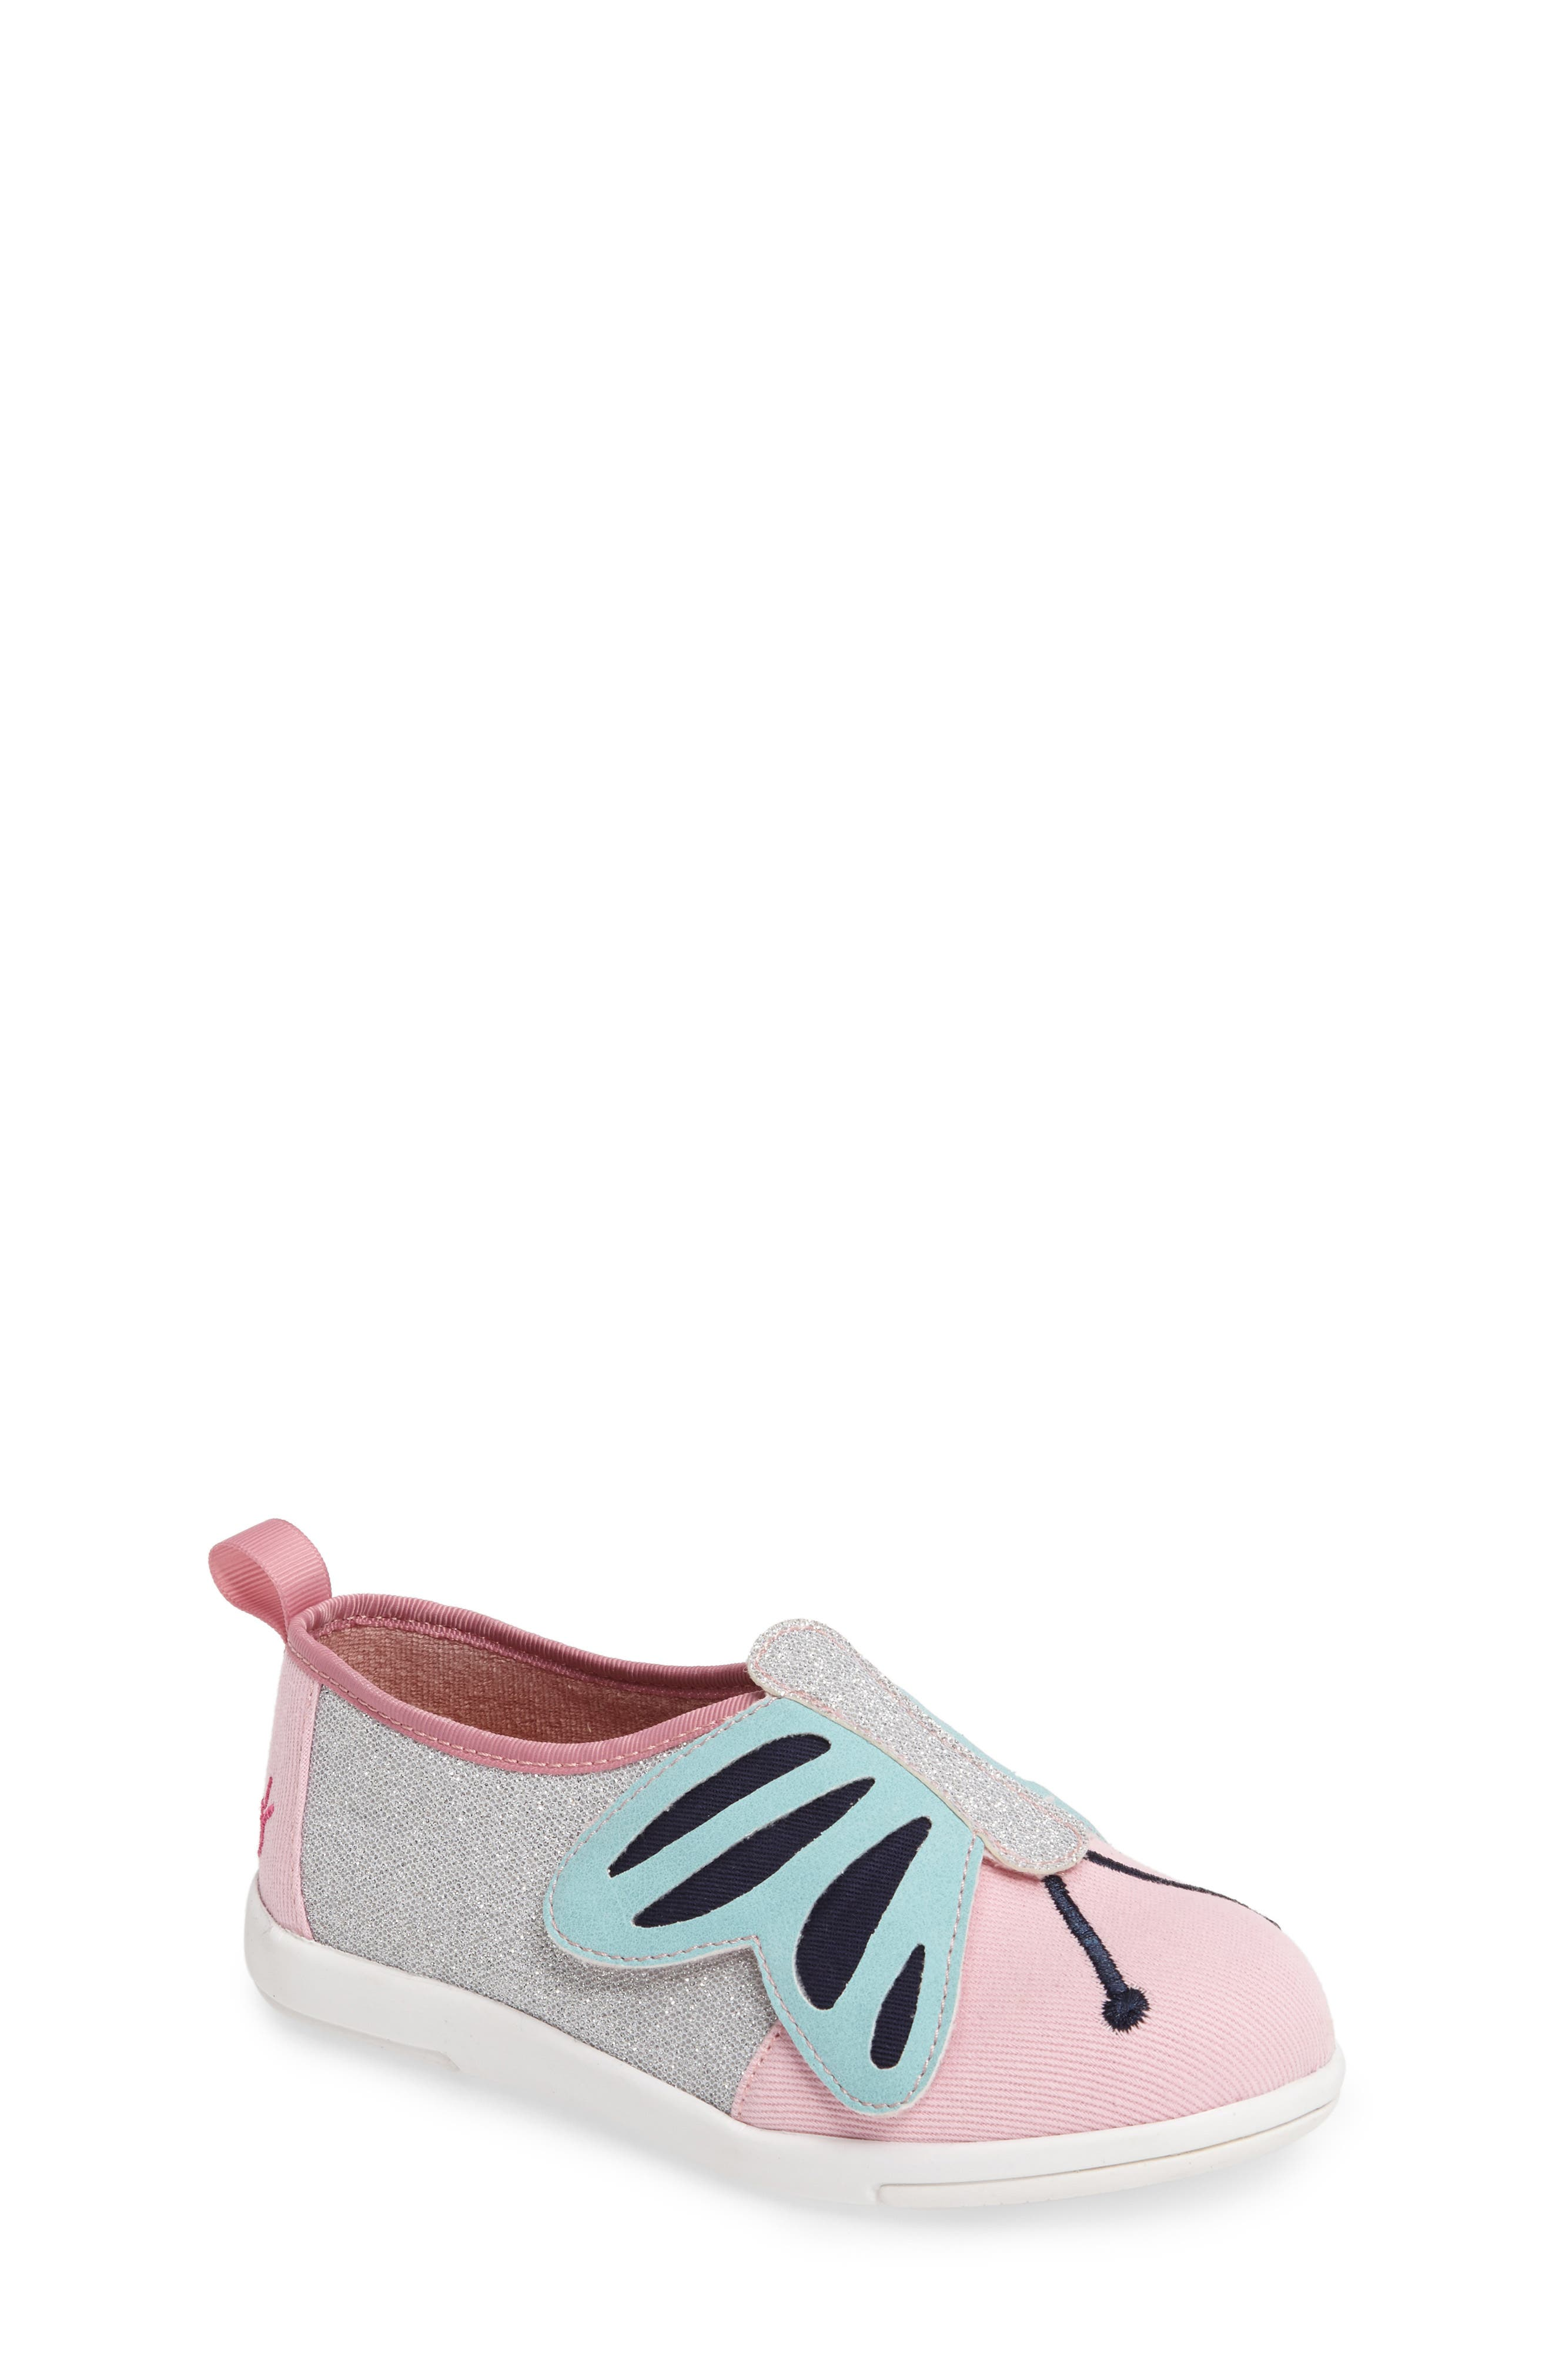 EMU Australia Butterfly Sneaker (Toddler, Little Kid & Big Kid)